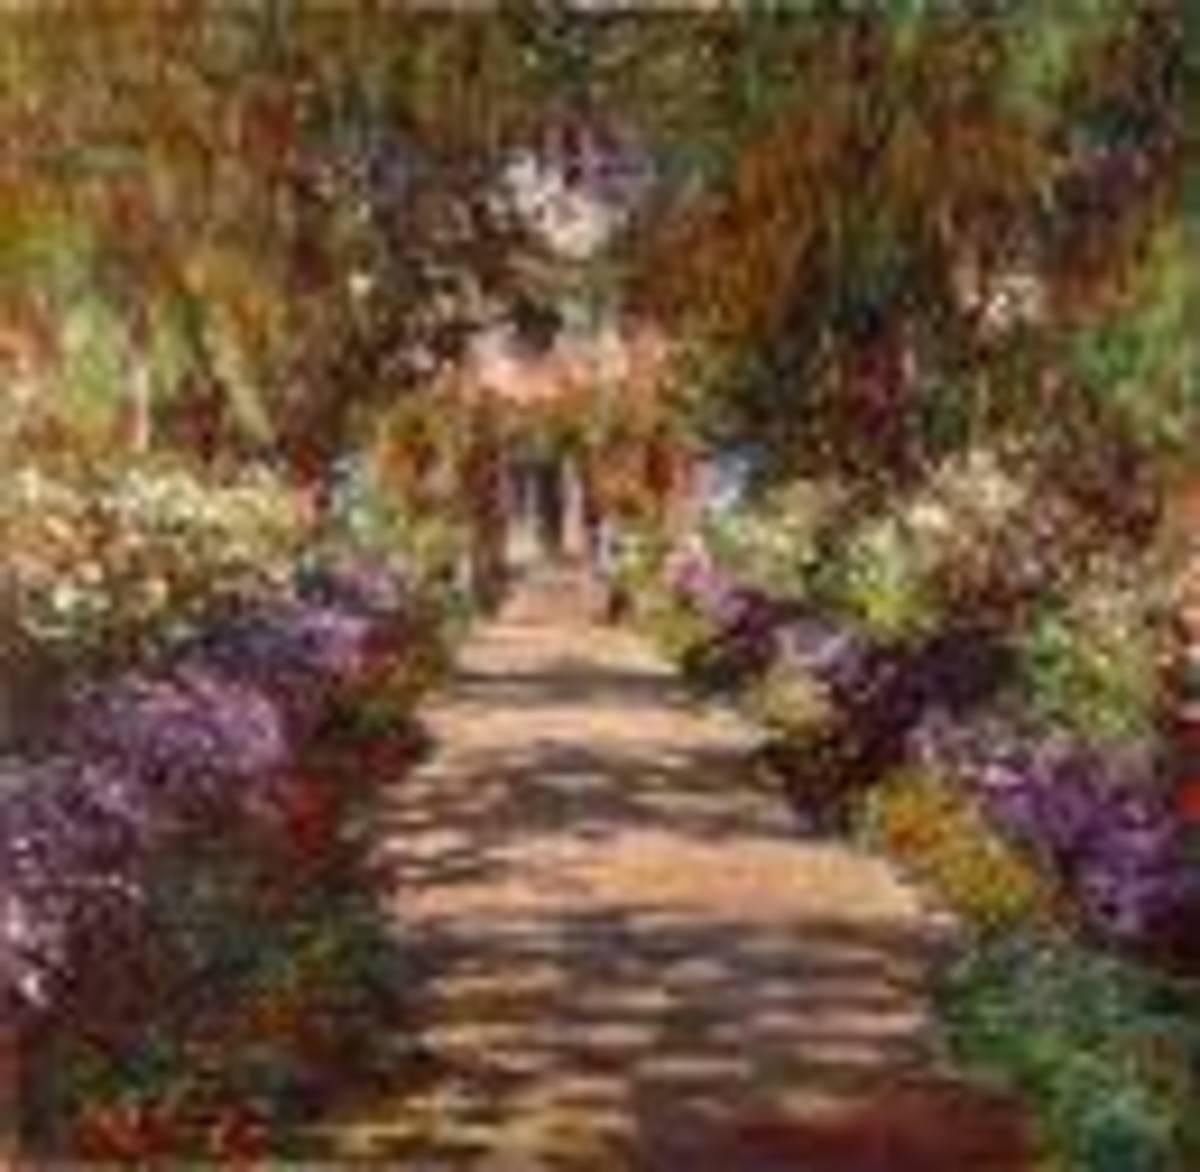 A winding lane flanked by rows of flowers